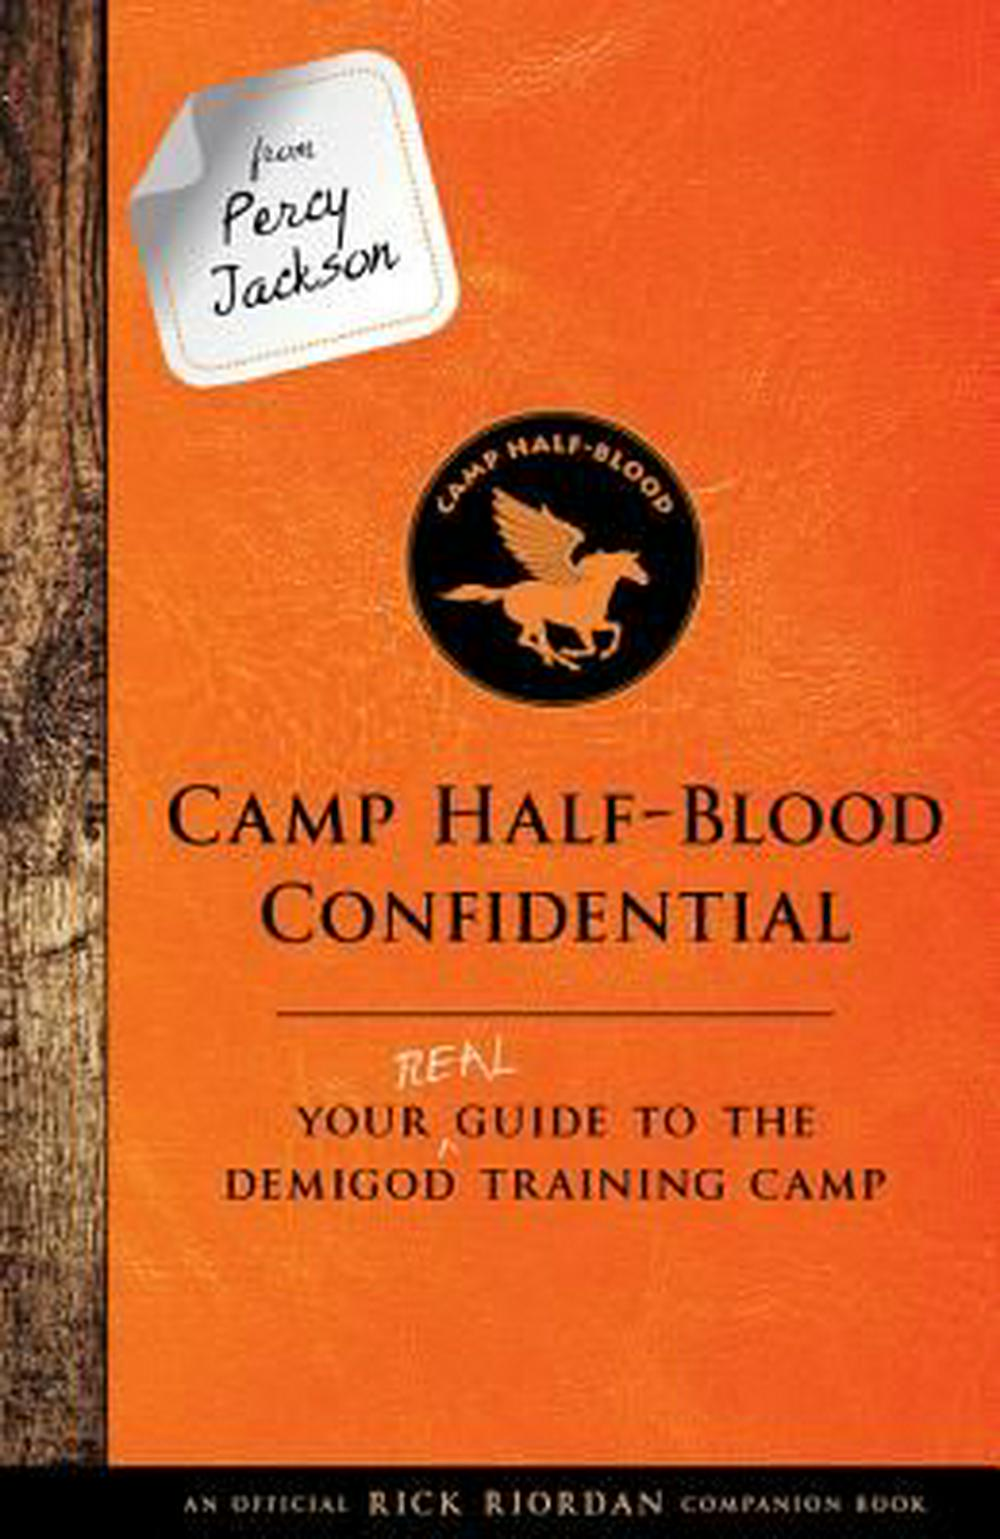 Camp Half-blood Confidential: Your Real Guide to the Demigod Training Camp (Trials of Apollo) by Rick Riordan, ISBN: 9781484785553